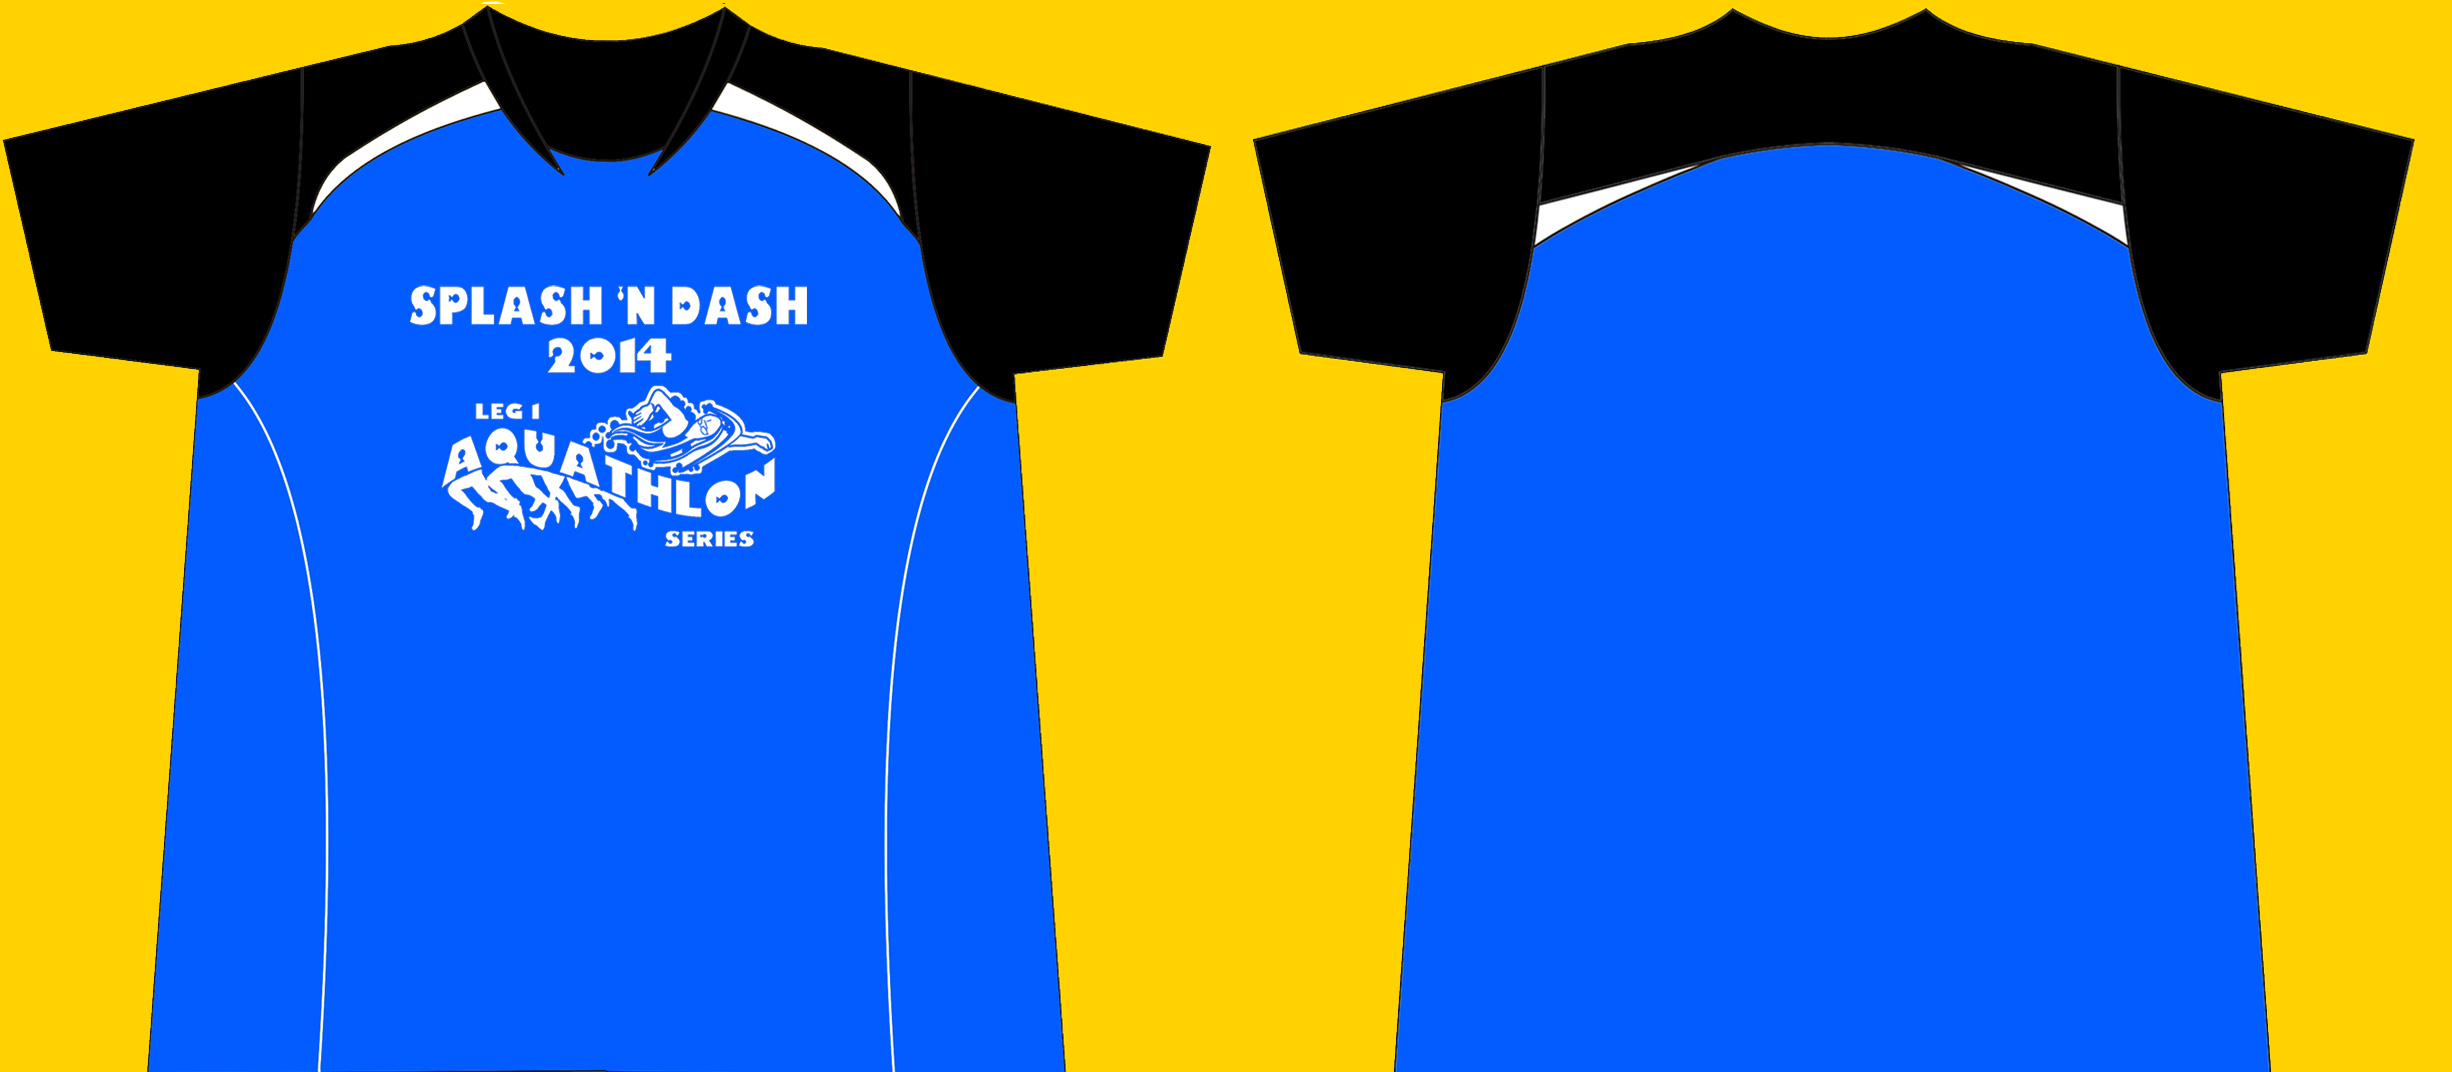 splash-n-dash-aquathlon-series-2014-singlet